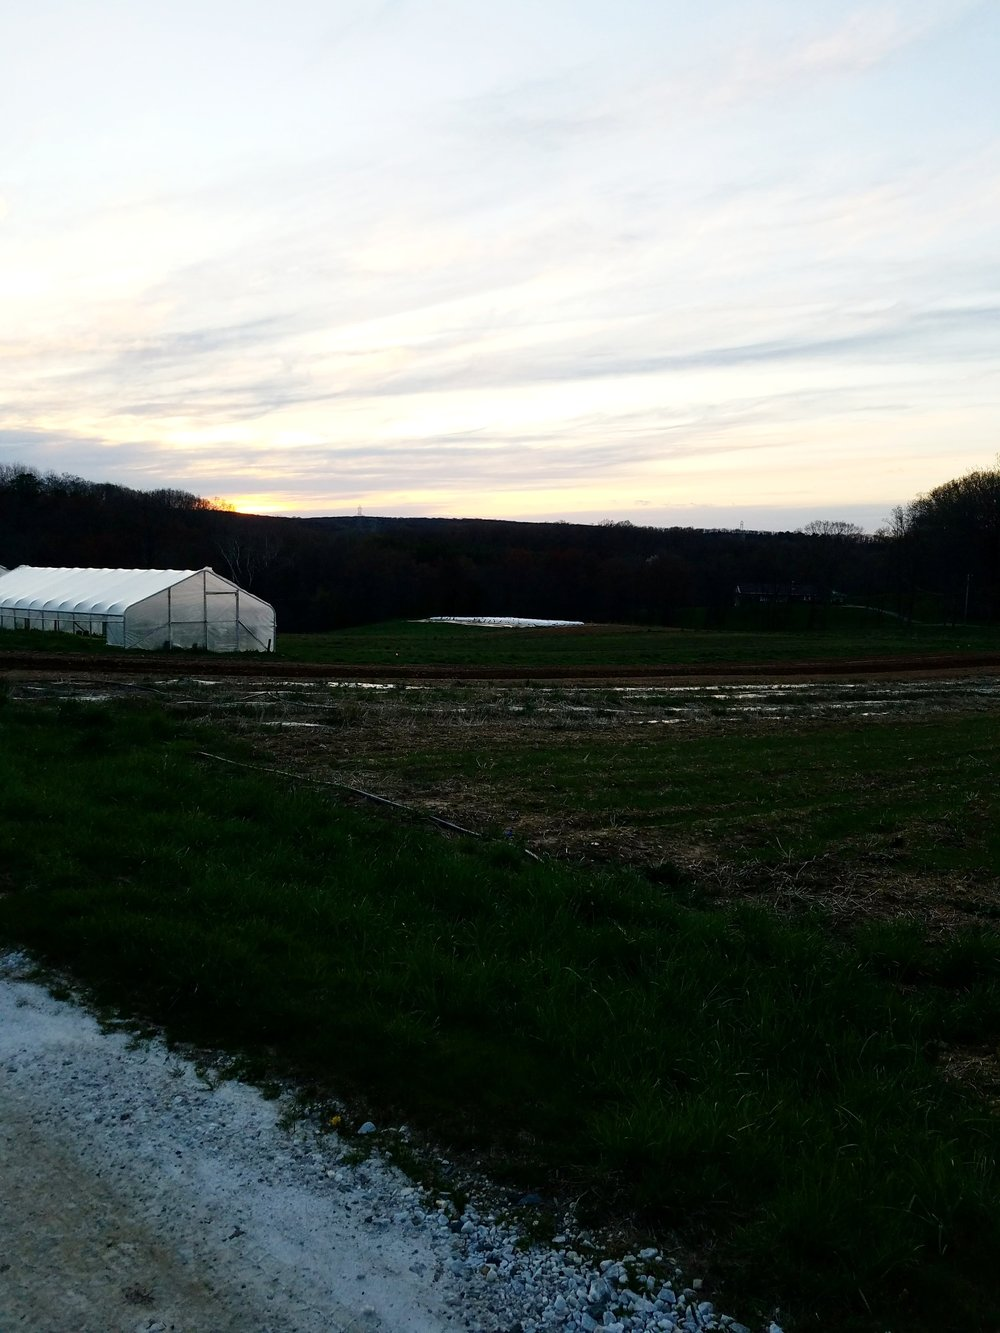 And a sunset rounds out a day at the farm